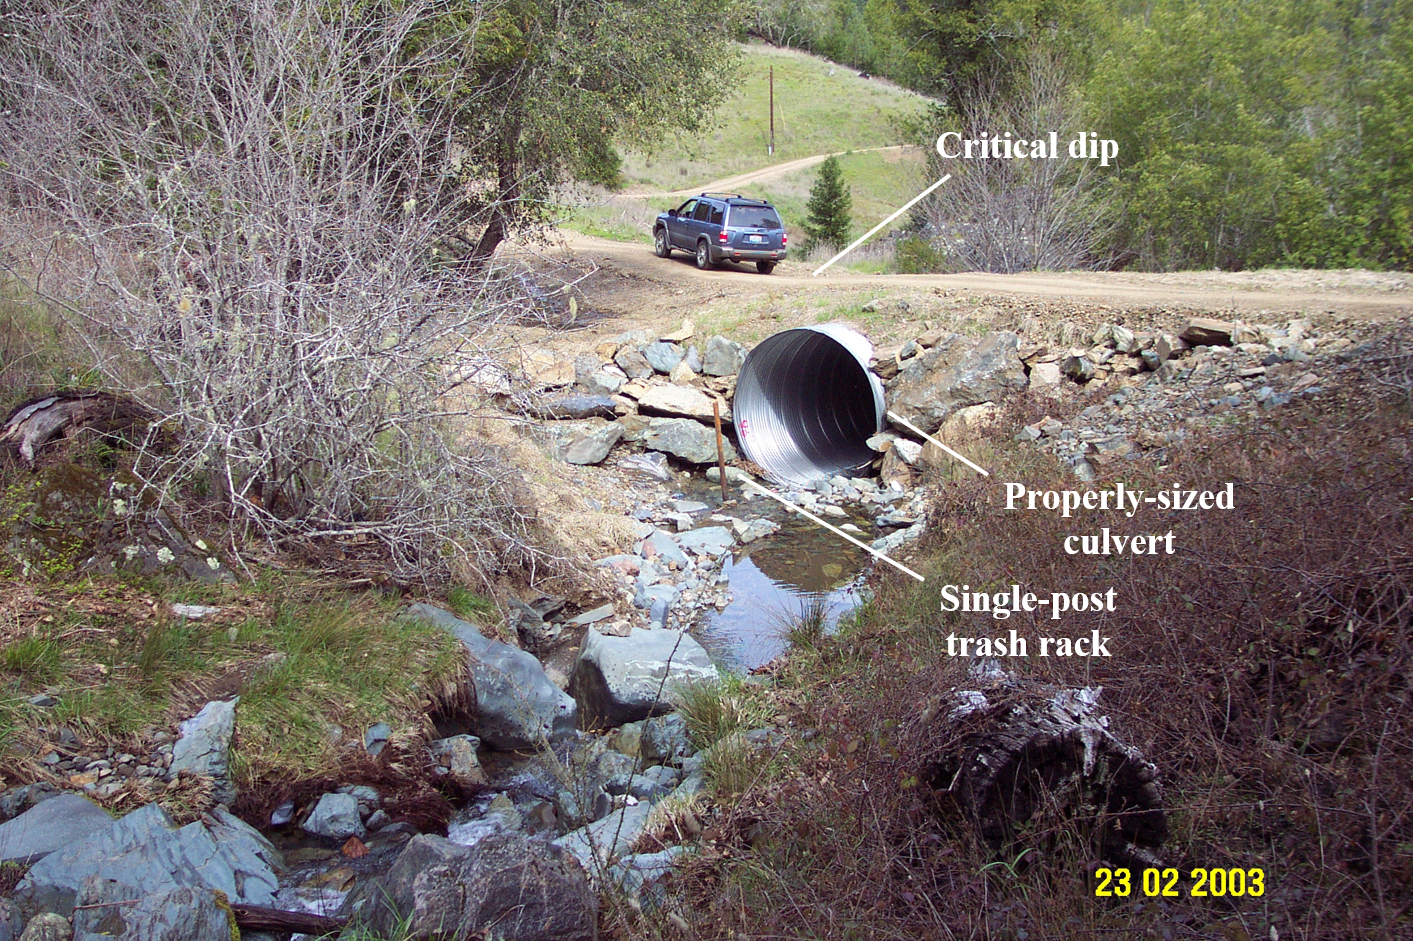 A larger view of a dirt road shows a culvert (with an associated trash rack). About 5-10 feet up from the culvert, a critical dip (a literal dip in the road) has been installed to ensure the stream is not diverted in a storm